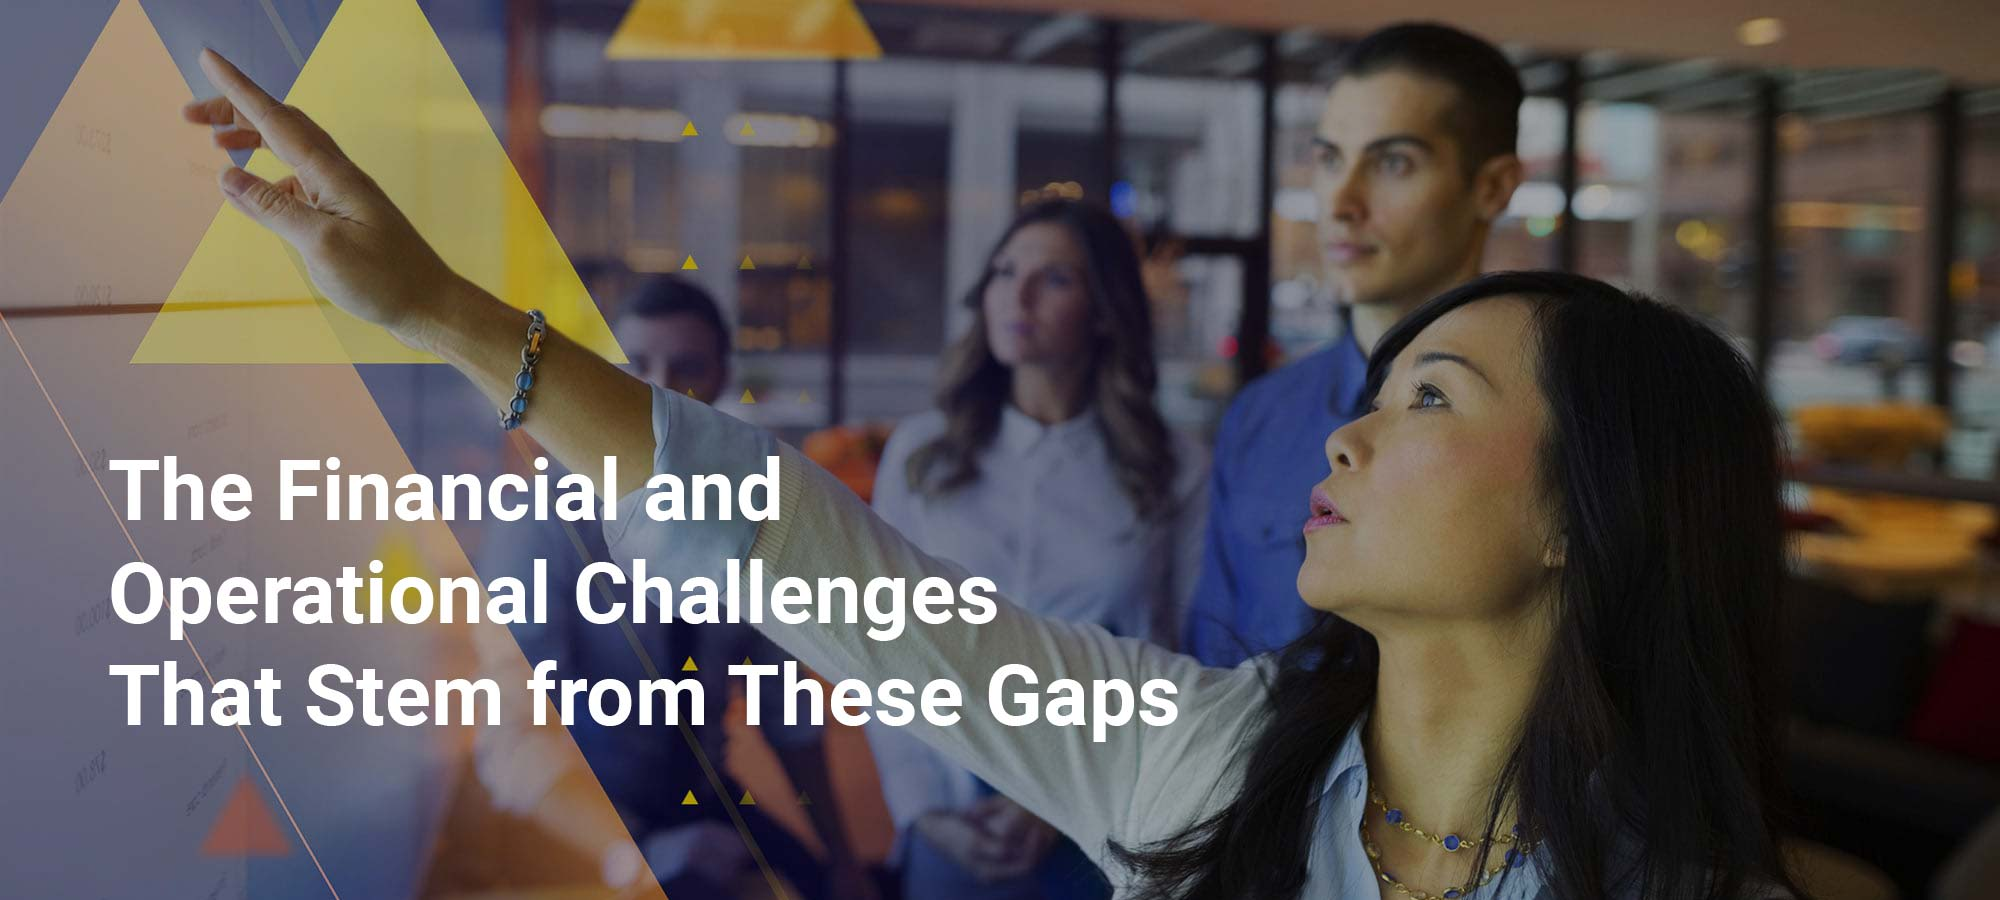 The Financial and Operational Challenges That Stem from These Gaps